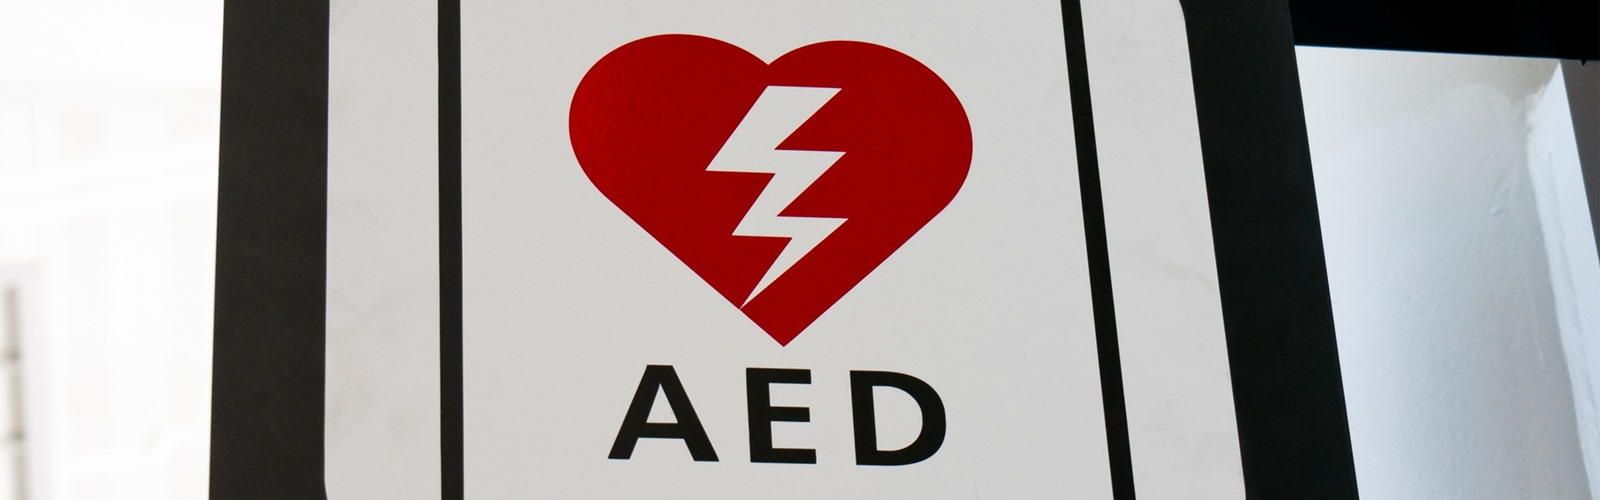 Sign for automatic external defibrillator